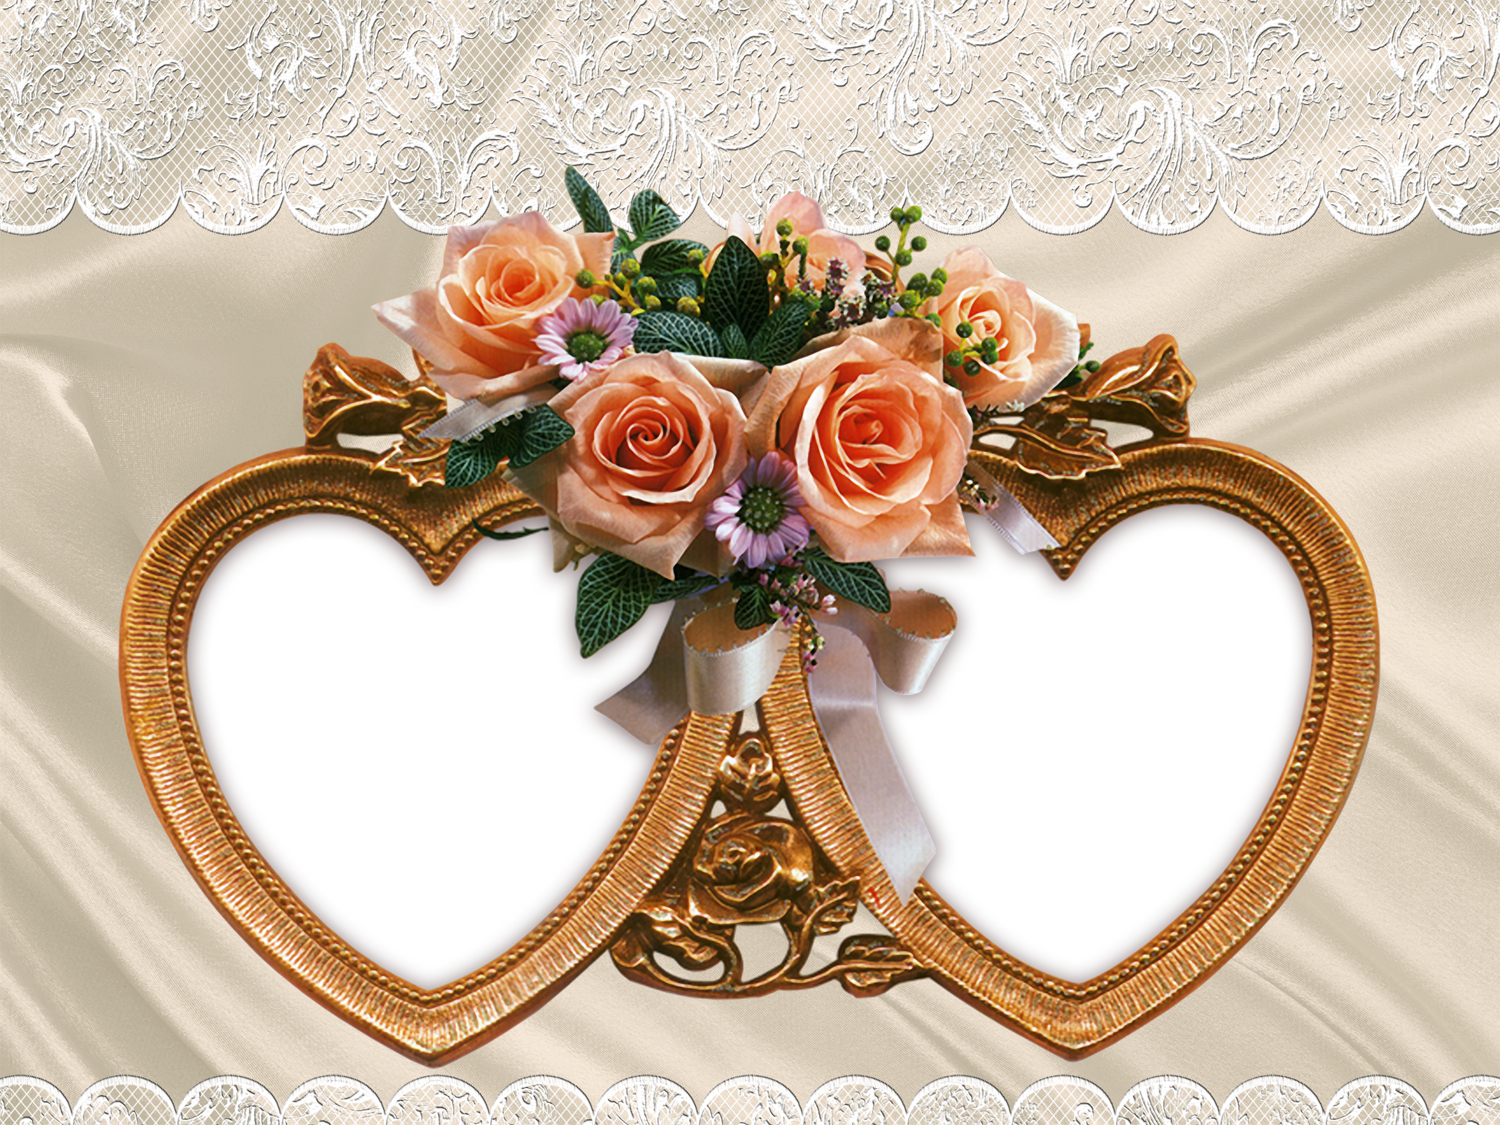 Wedding Png Hd Free Download Transparent Wedding Hd Download Png